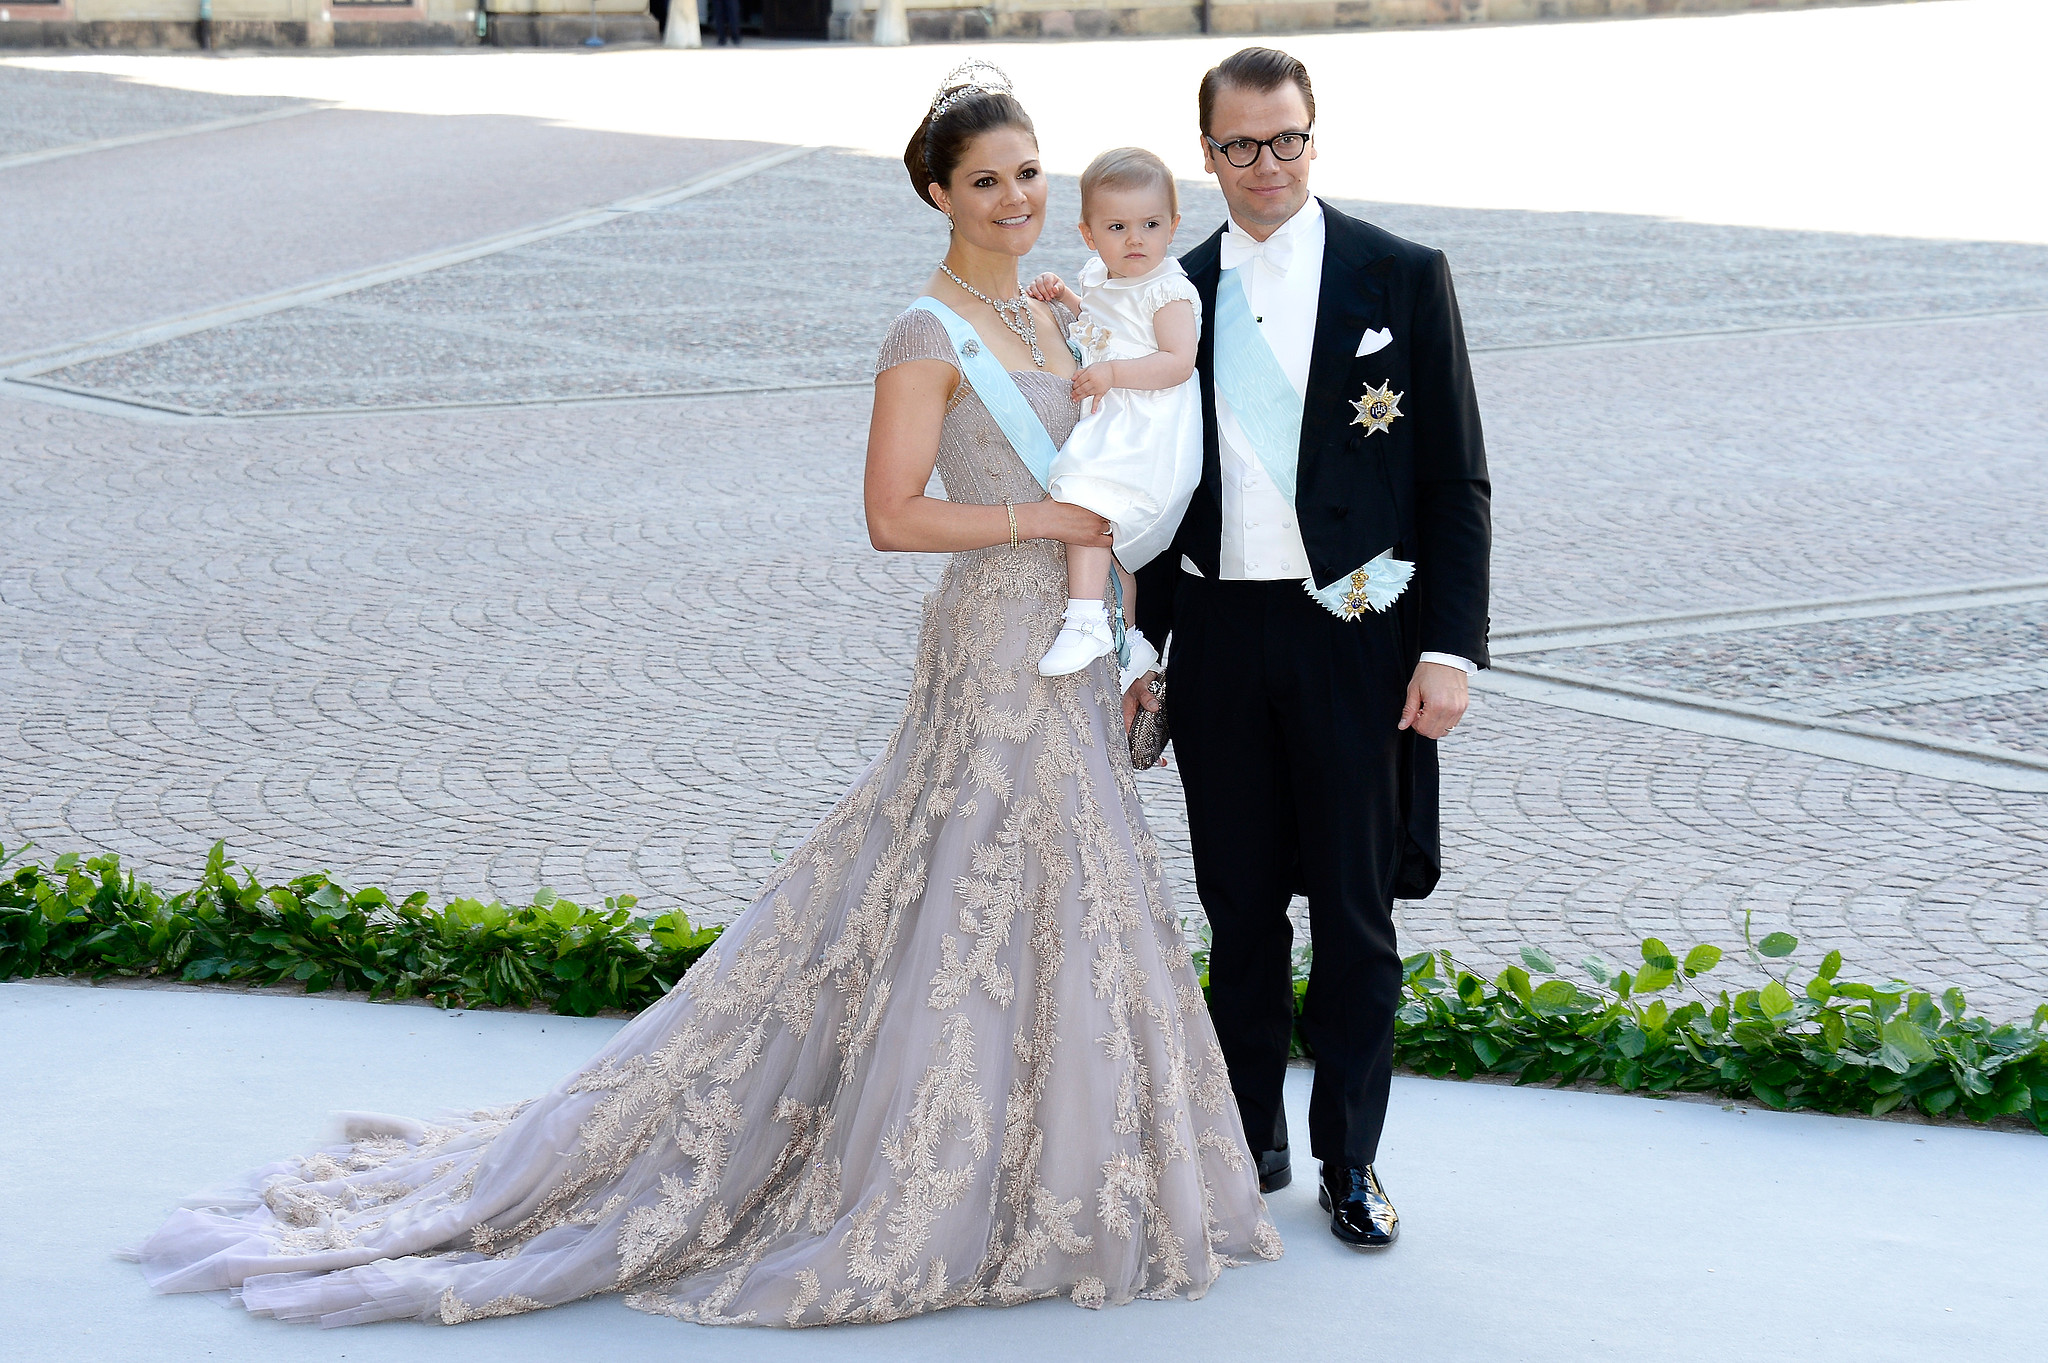 Who Is Crown Princess Victoria Of Sweden Who Is Crown Princess Victoria Of Sweden new pics